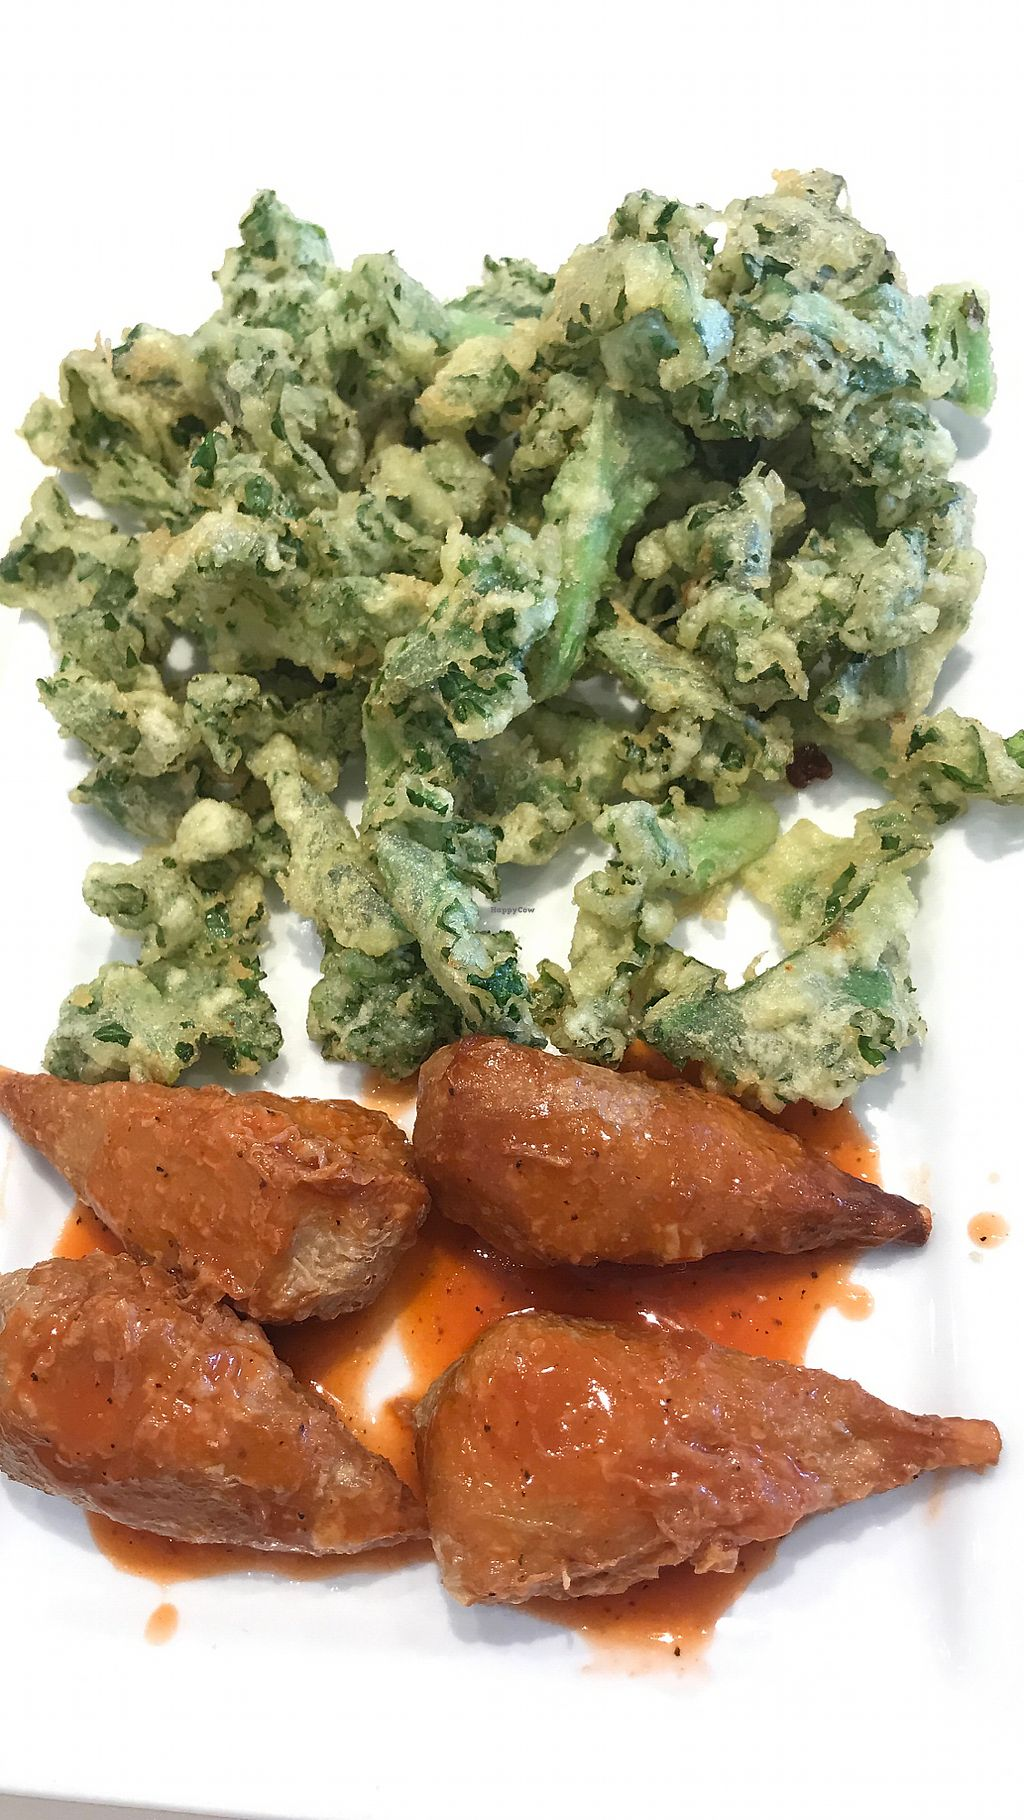 """Photo of VeGreen  by <a href=""""/members/profile/melissapedroso"""">melissapedroso</a> <br/>Buffalo wings <br/> October 30, 2017  - <a href='/contact/abuse/image/82970/320190'>Report</a>"""